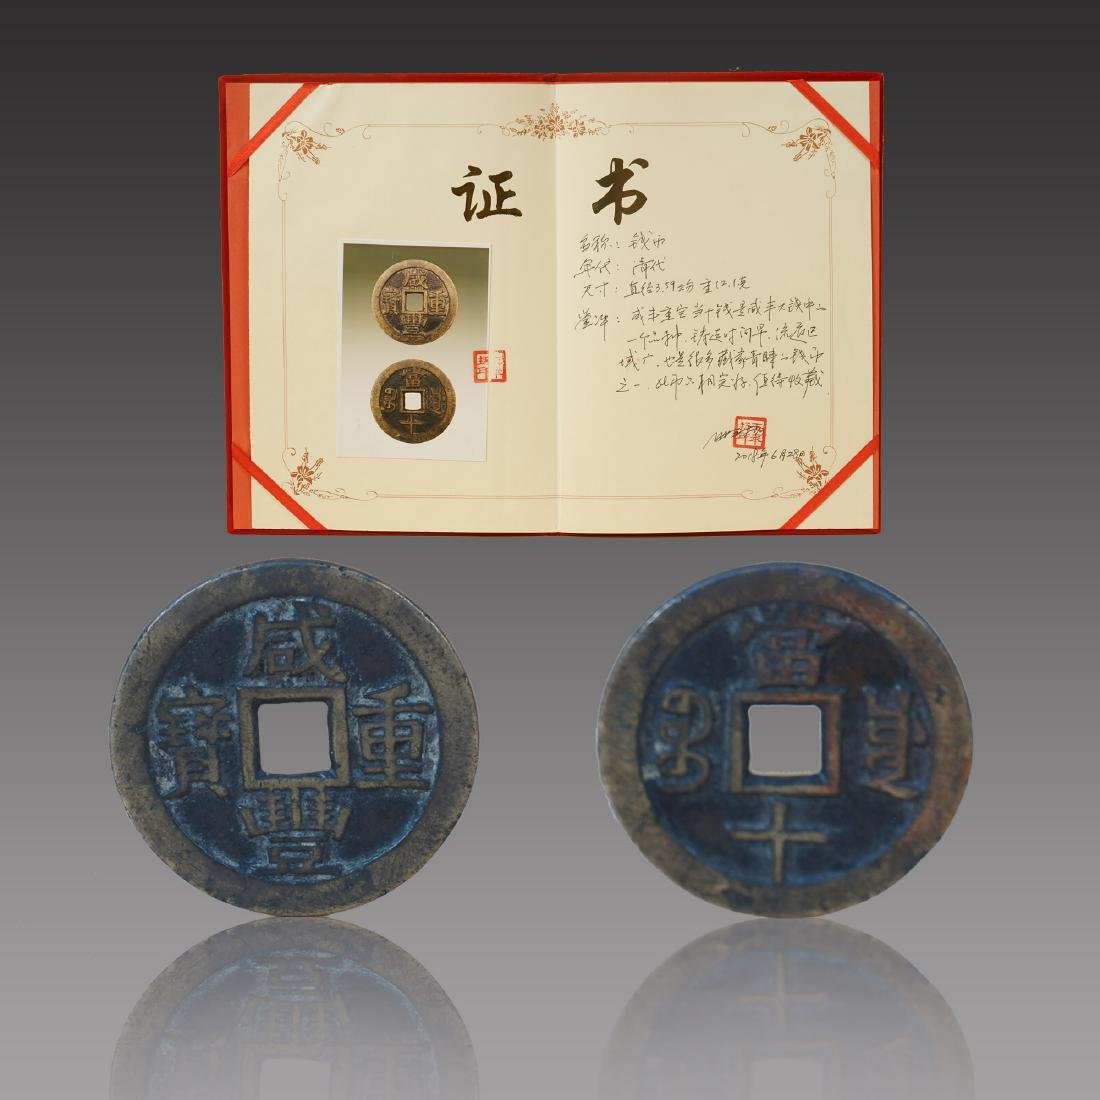 XIANFENG ANCIENT CHINESE COINS